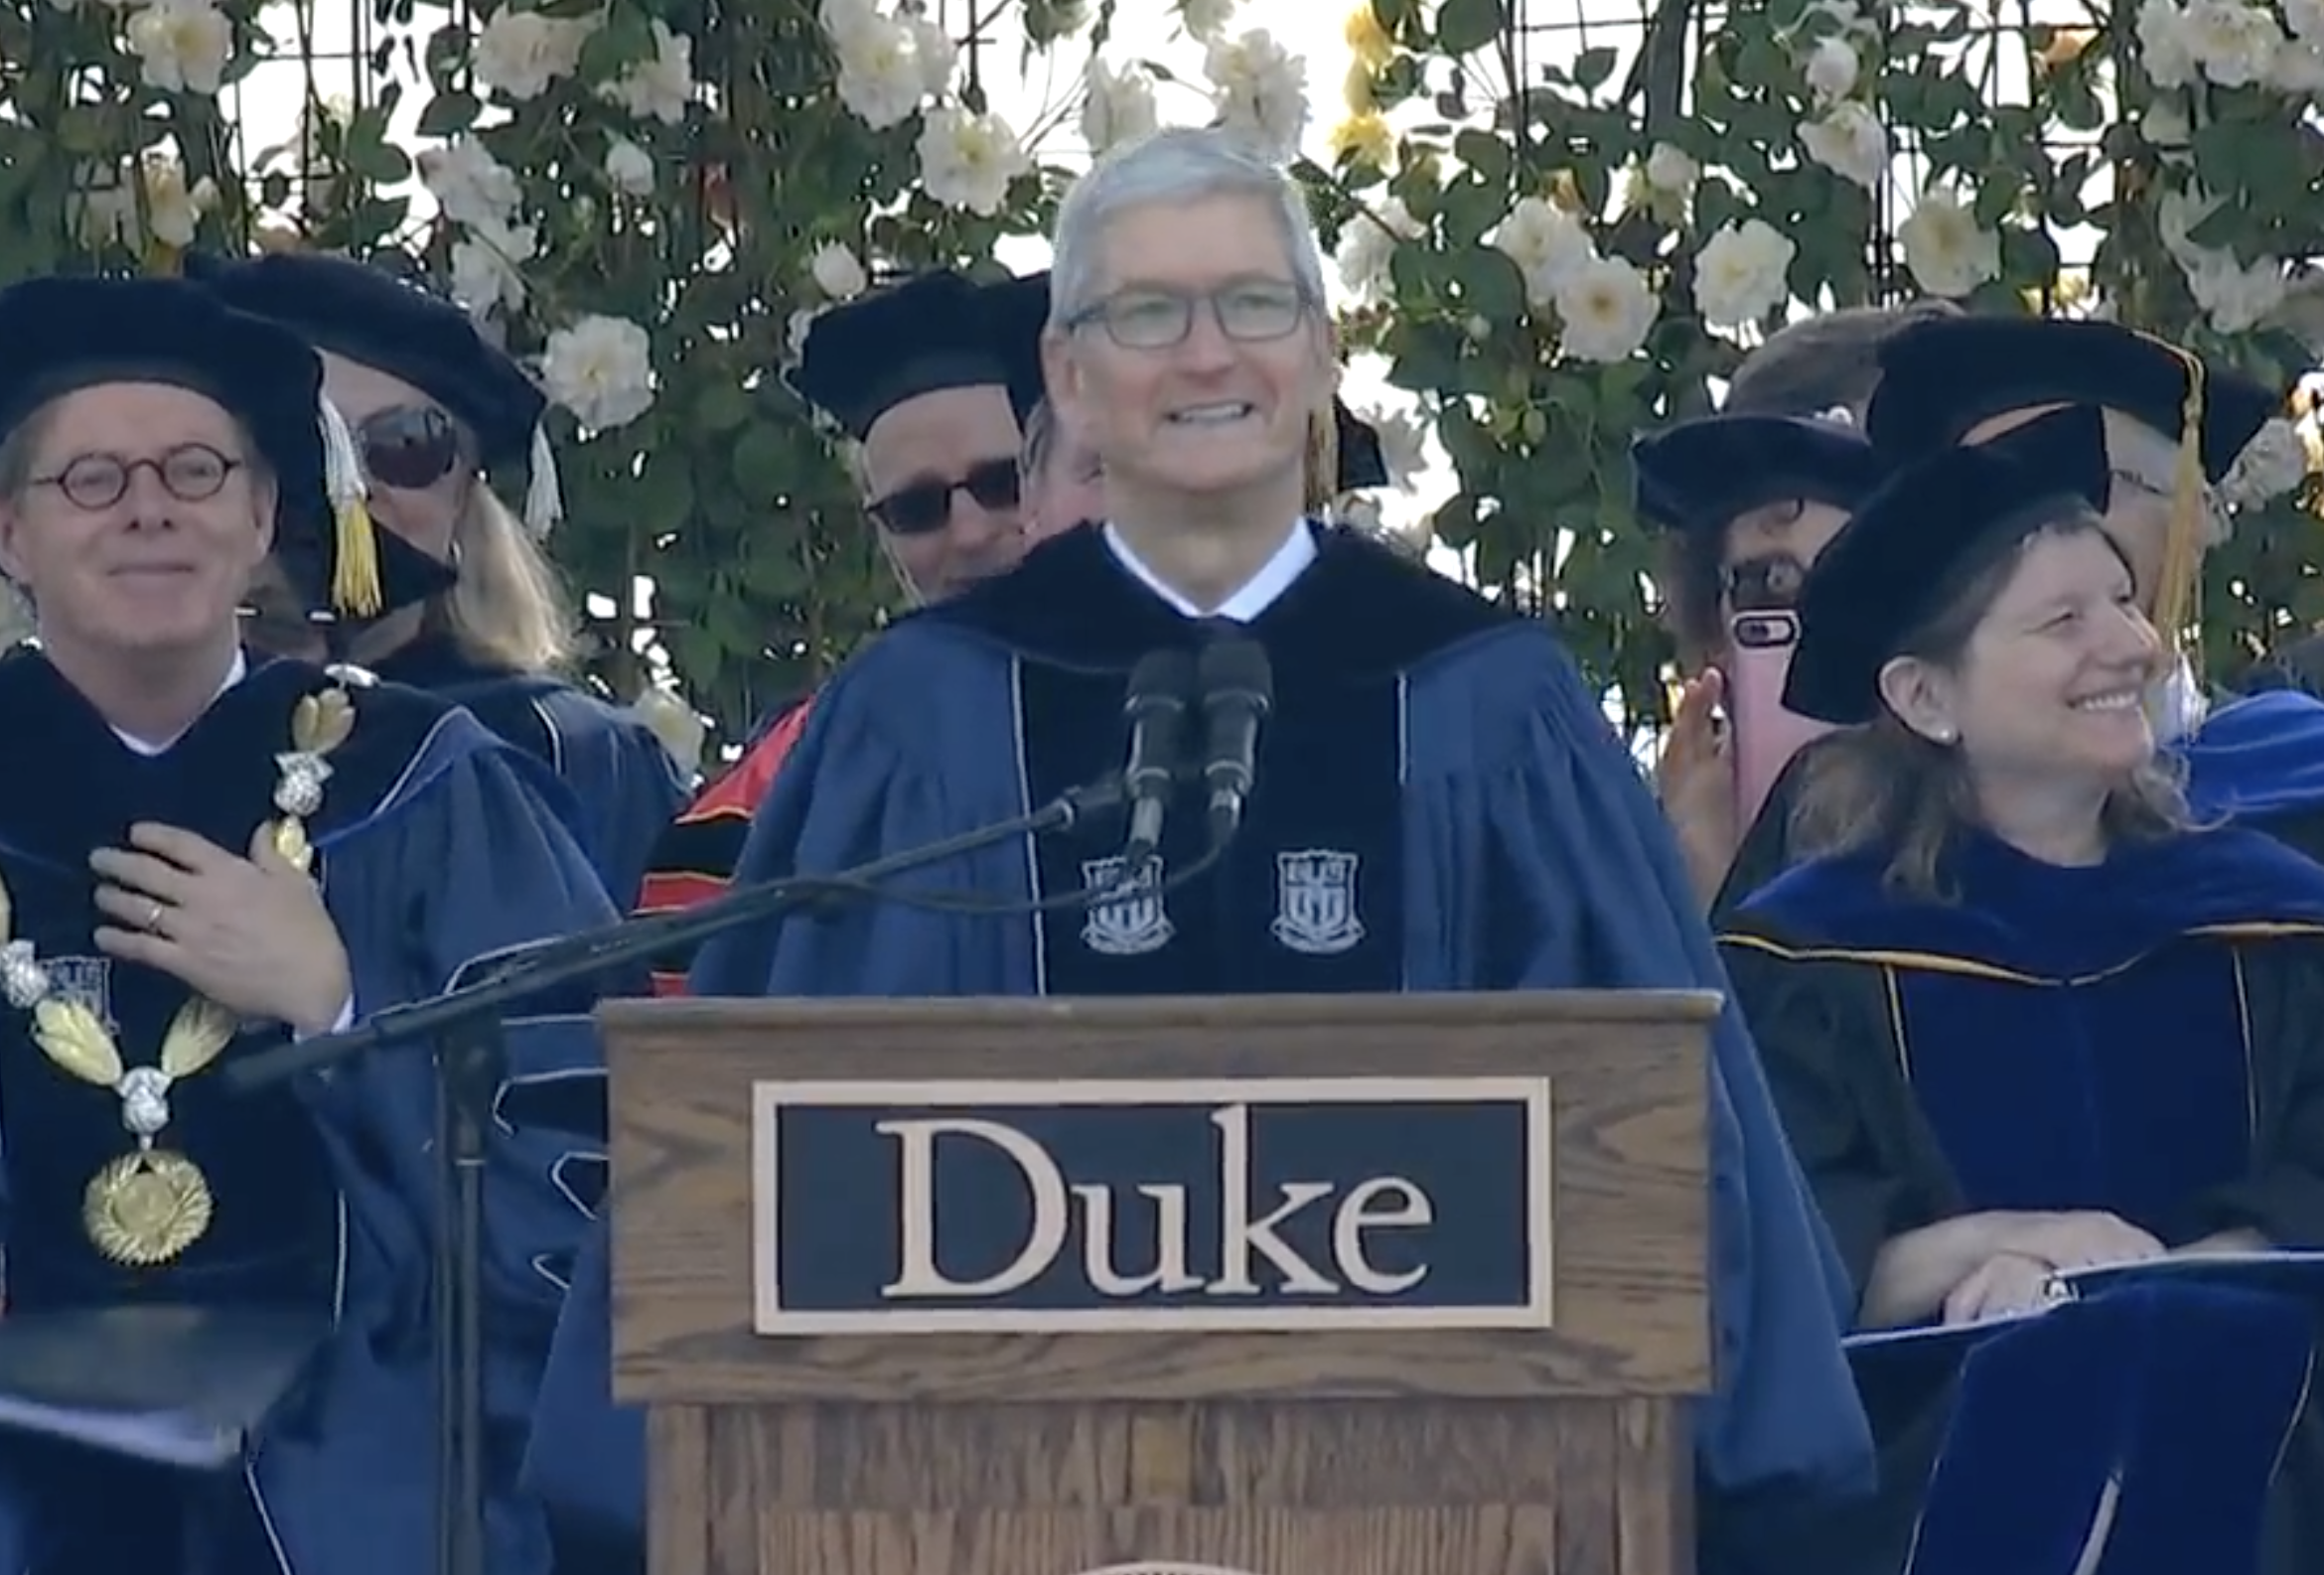 Apple CEO Tim Cook behind the podium at the Duke graduation